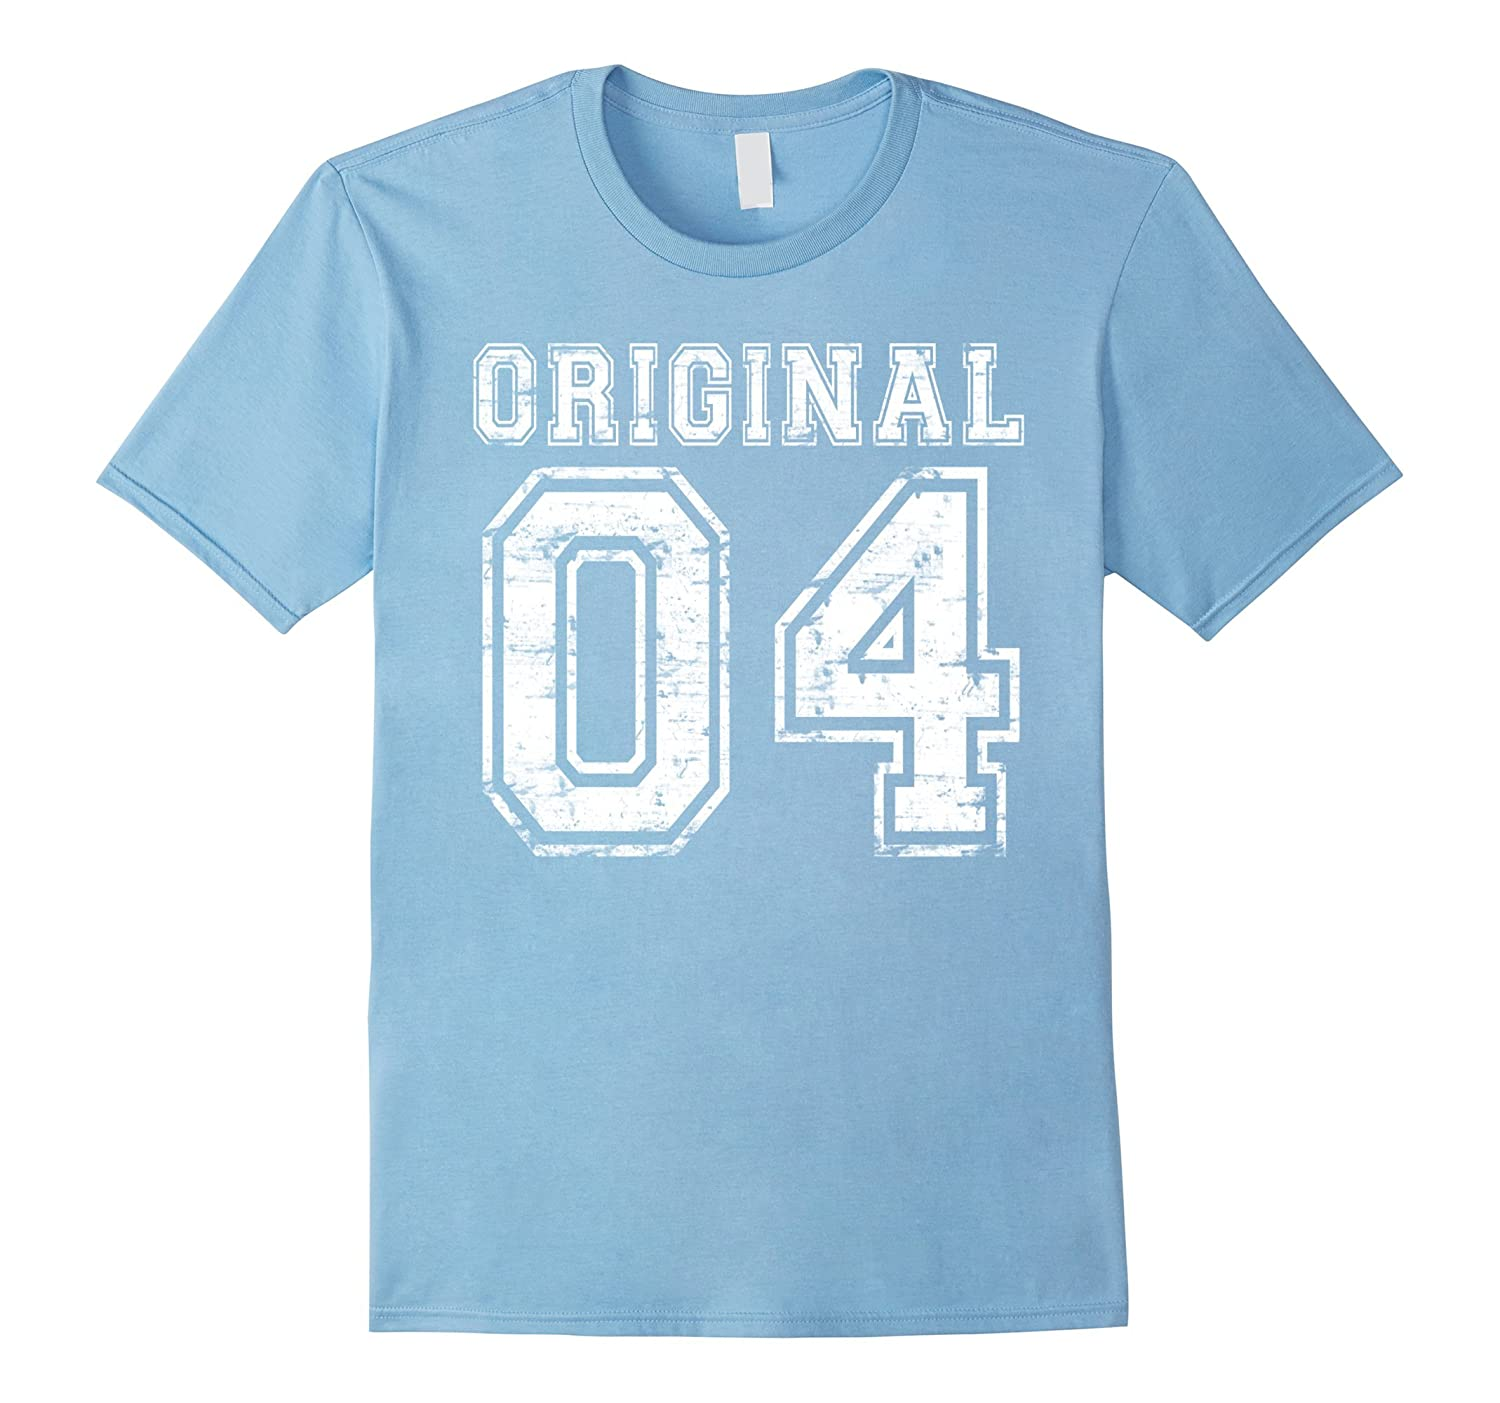 13th Birthday Shirt For Boys or For Girls Party Gifts